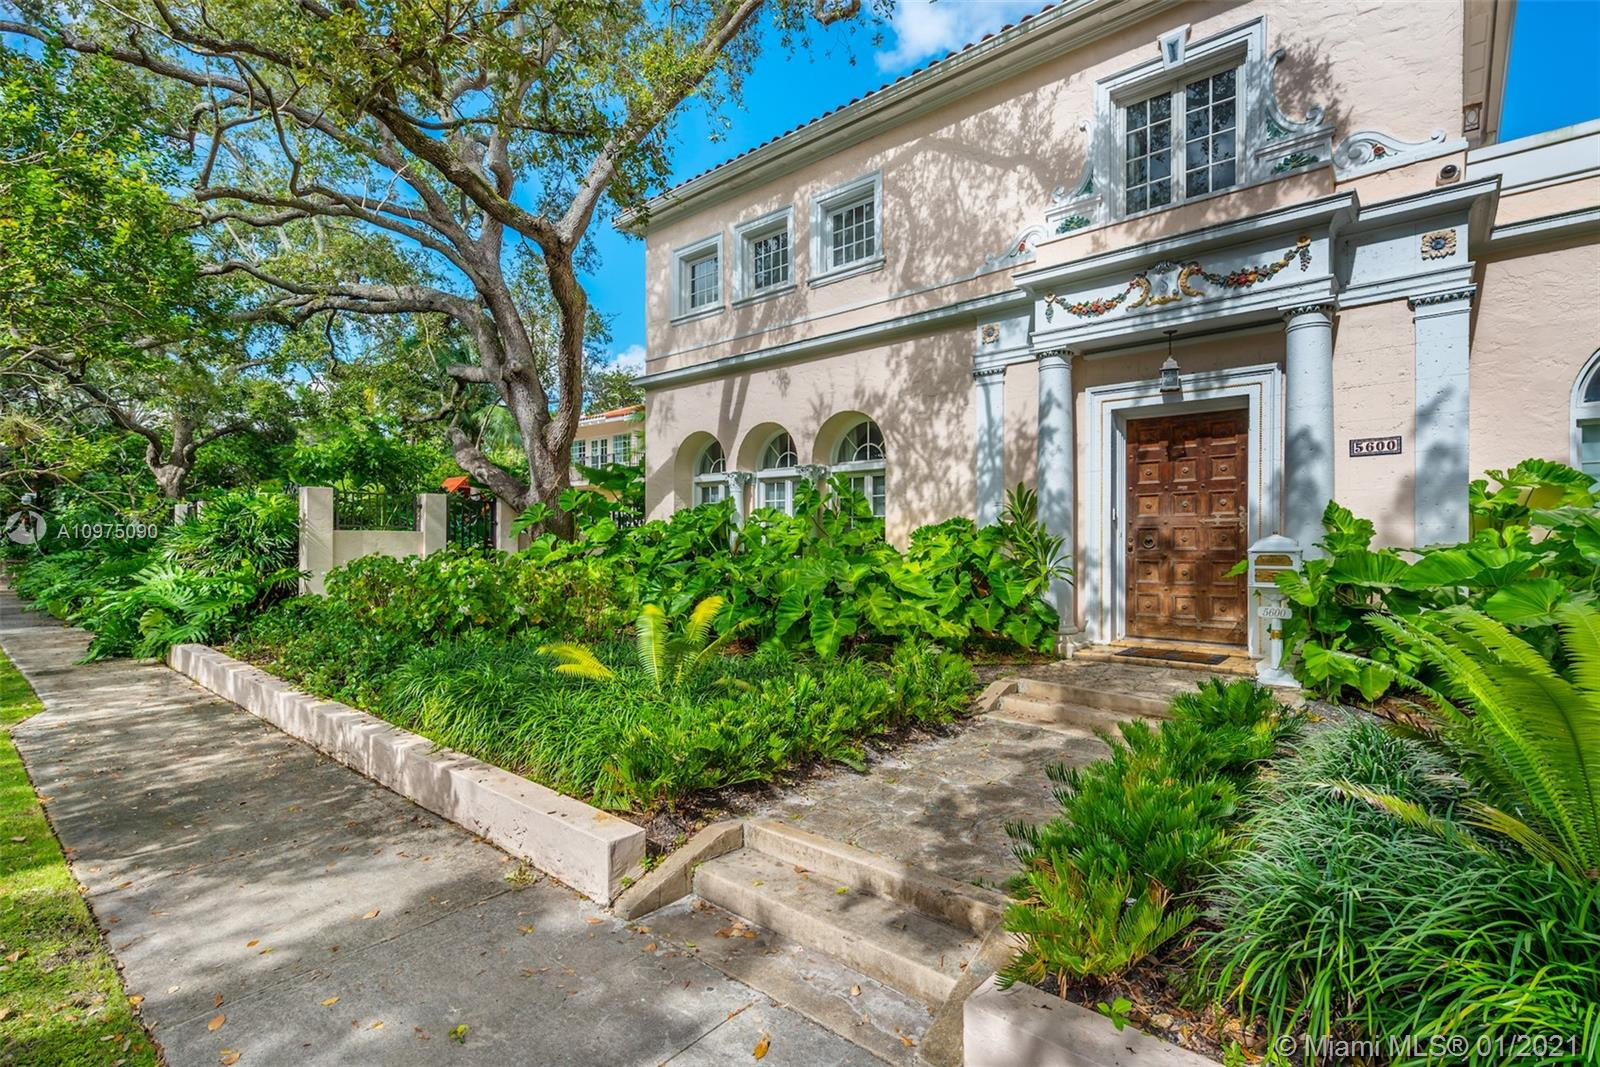 Details for 5600 6th Ave, Miami, FL 33137